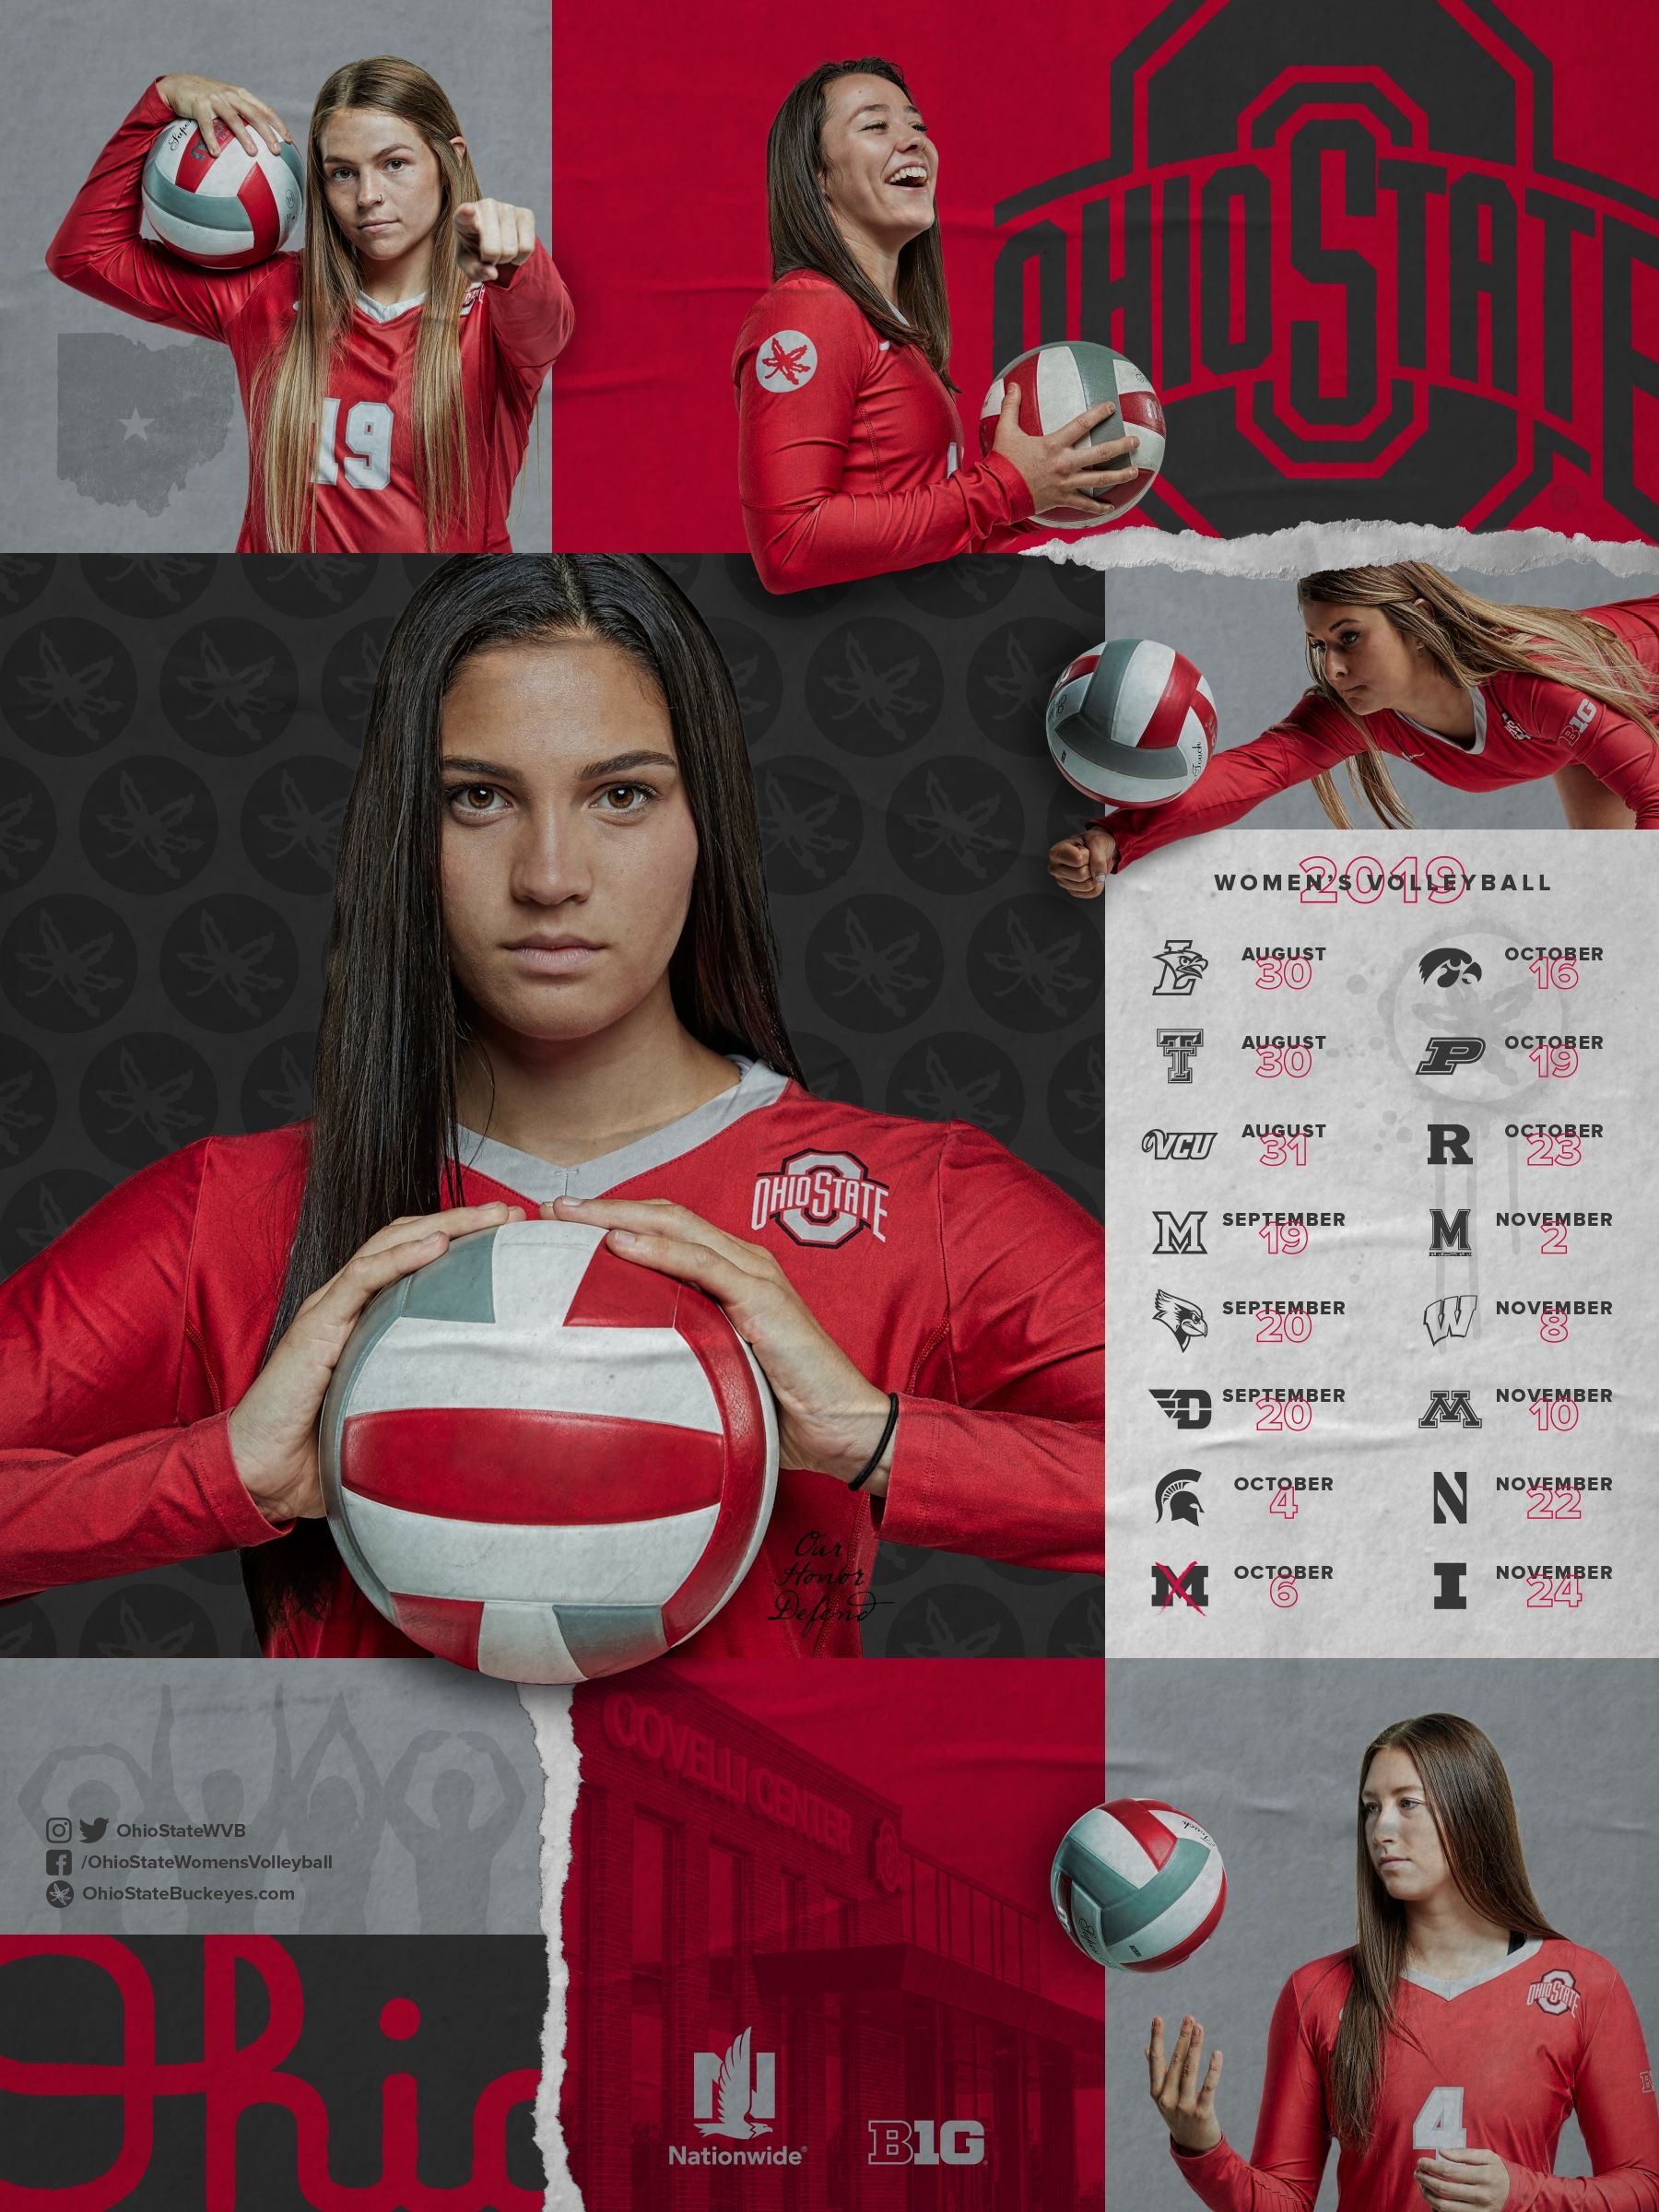 19 20 Volleyball Schedule Poster In 2020 Sports Graphic Design College Sports Graphics Sport Poster Design